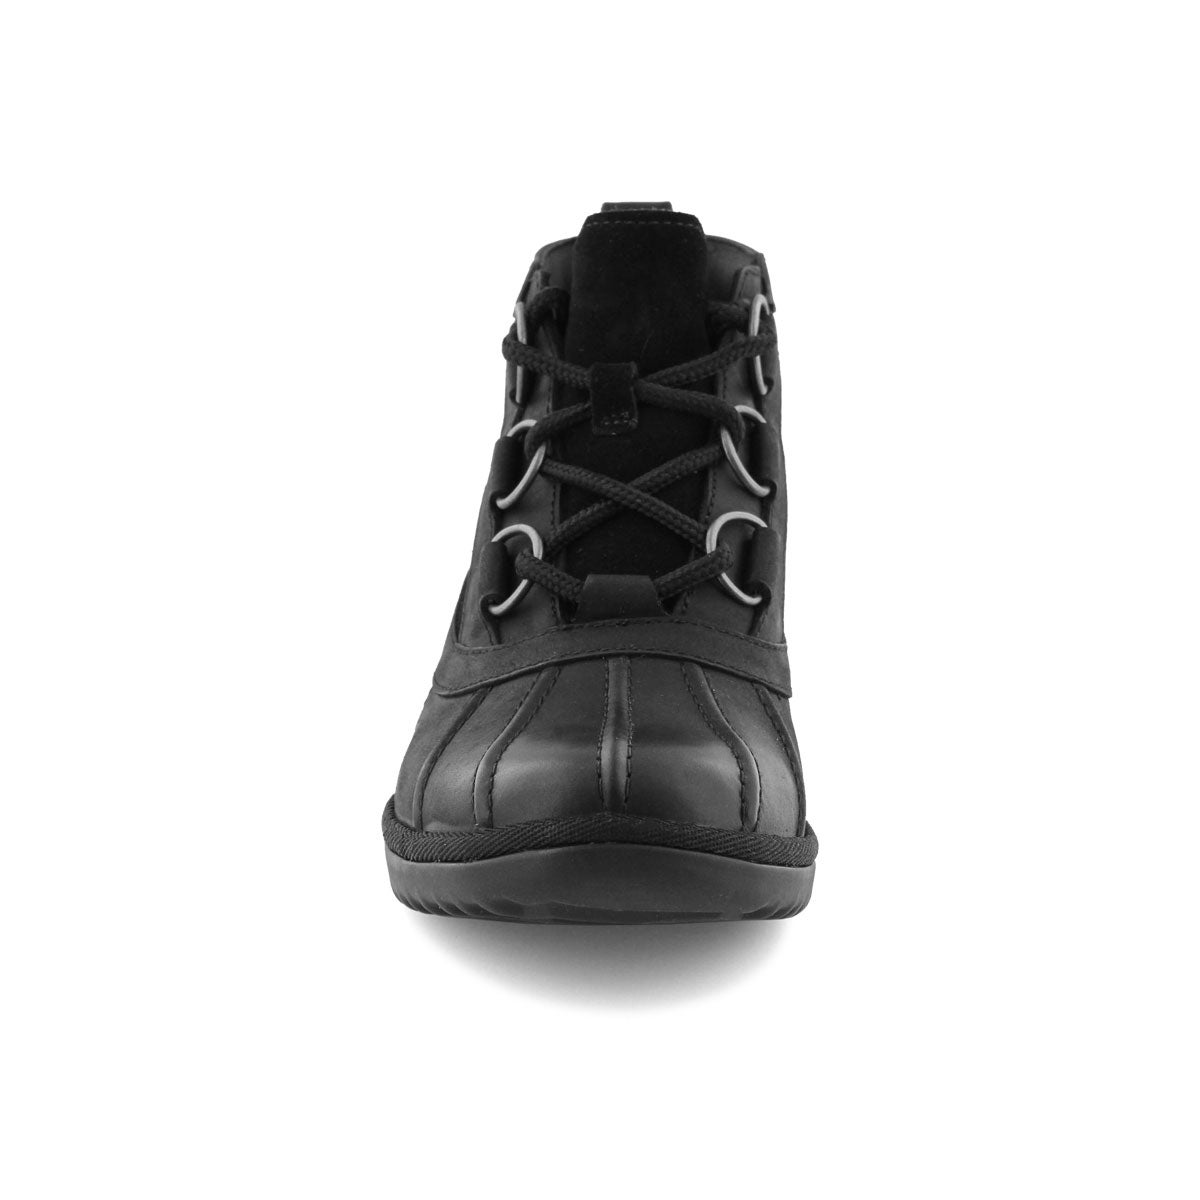 Lds Heather black lace up wtpf duckie